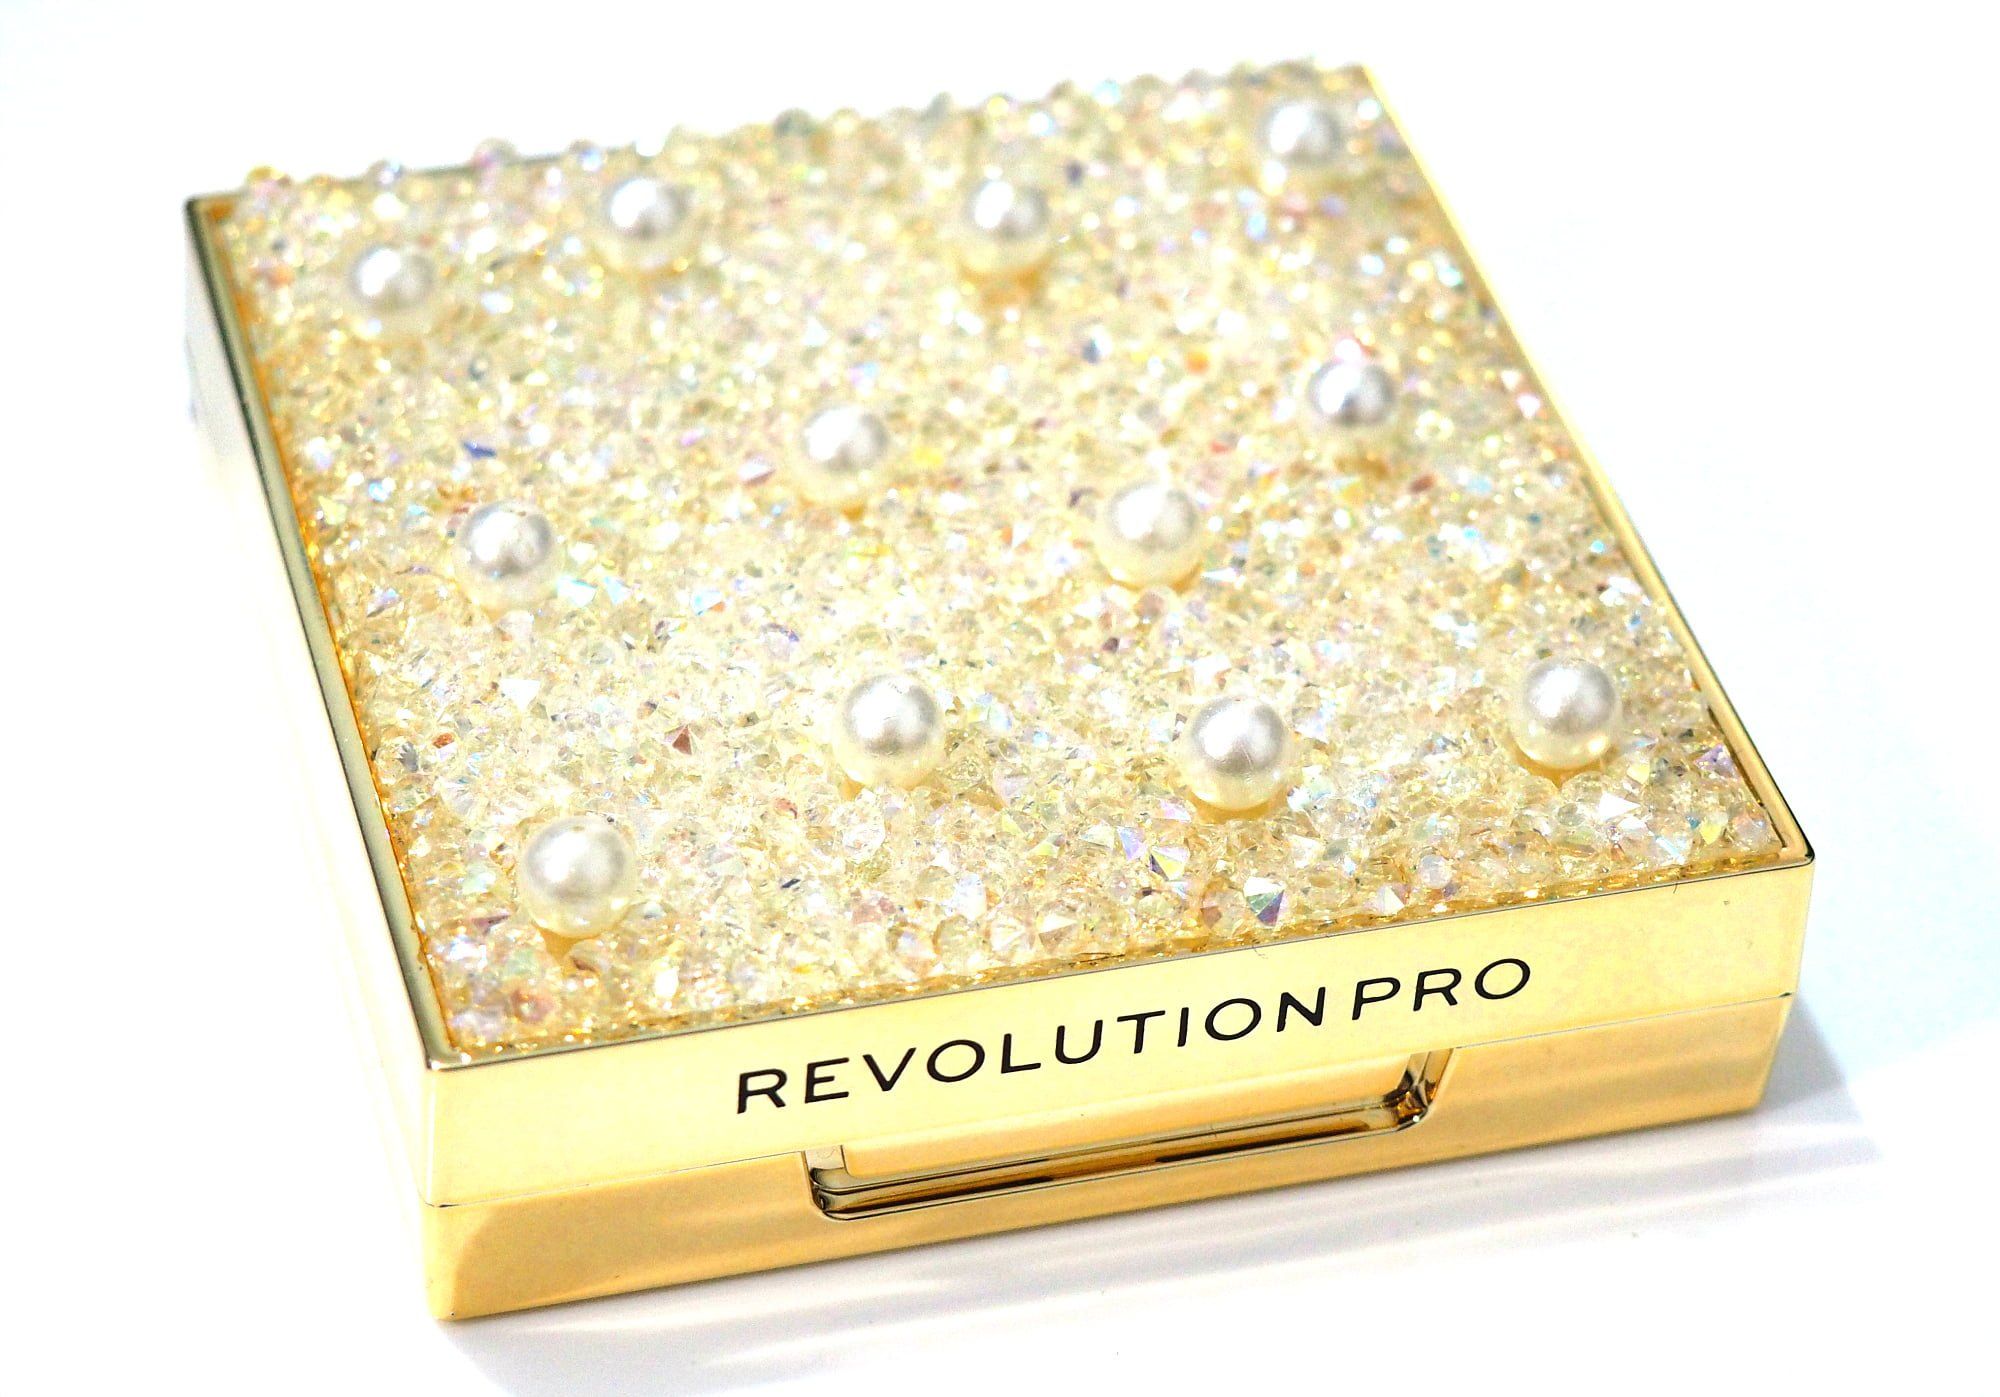 Revolution Pro Diamonds and Pearls Ultimate Eye Look Palette Review and Swatches